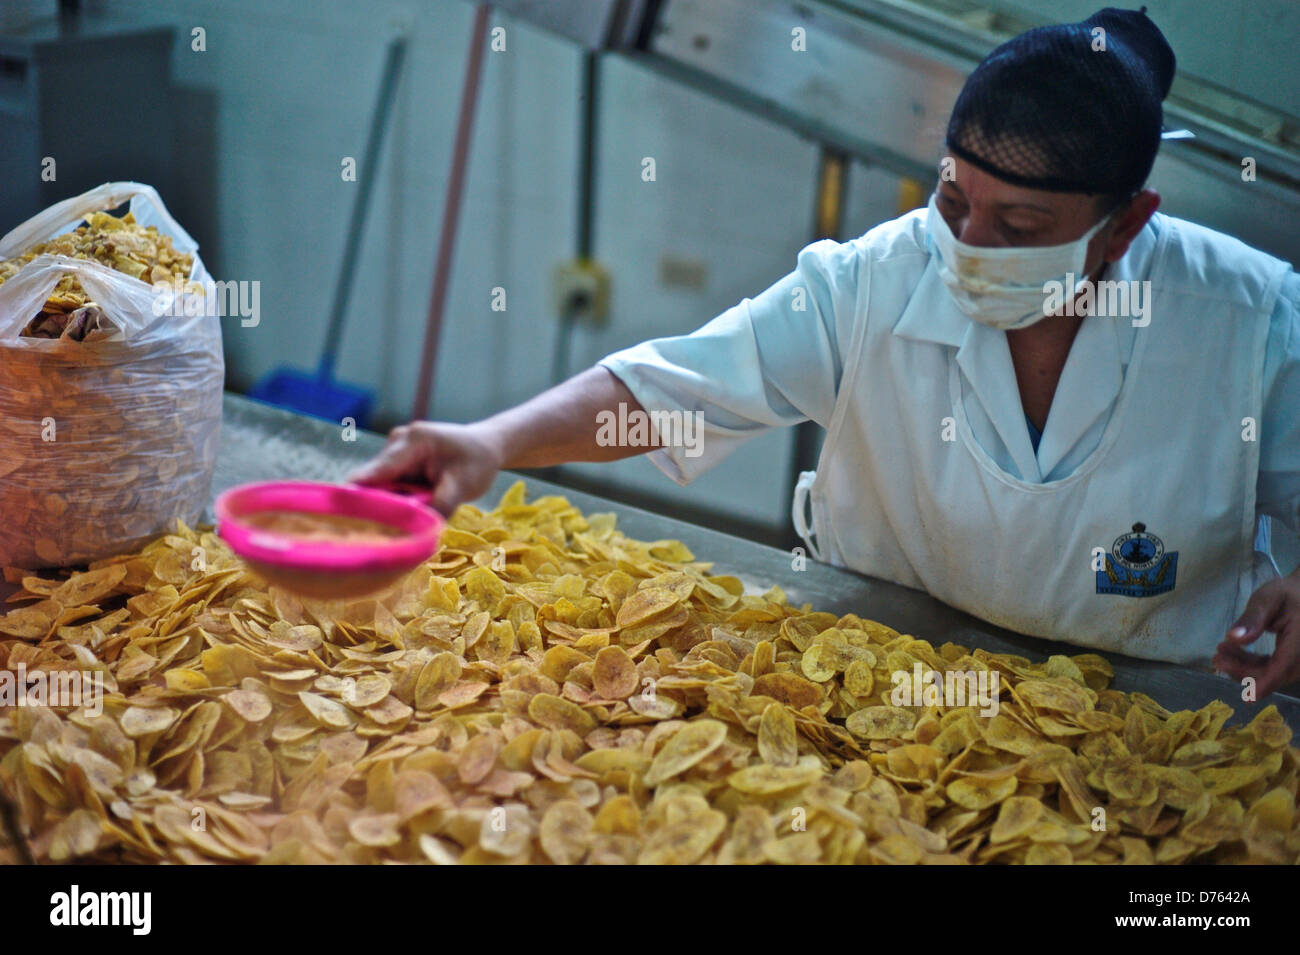 Panam Majazec, Frying plantains at agroindustrial family company - Stock Image